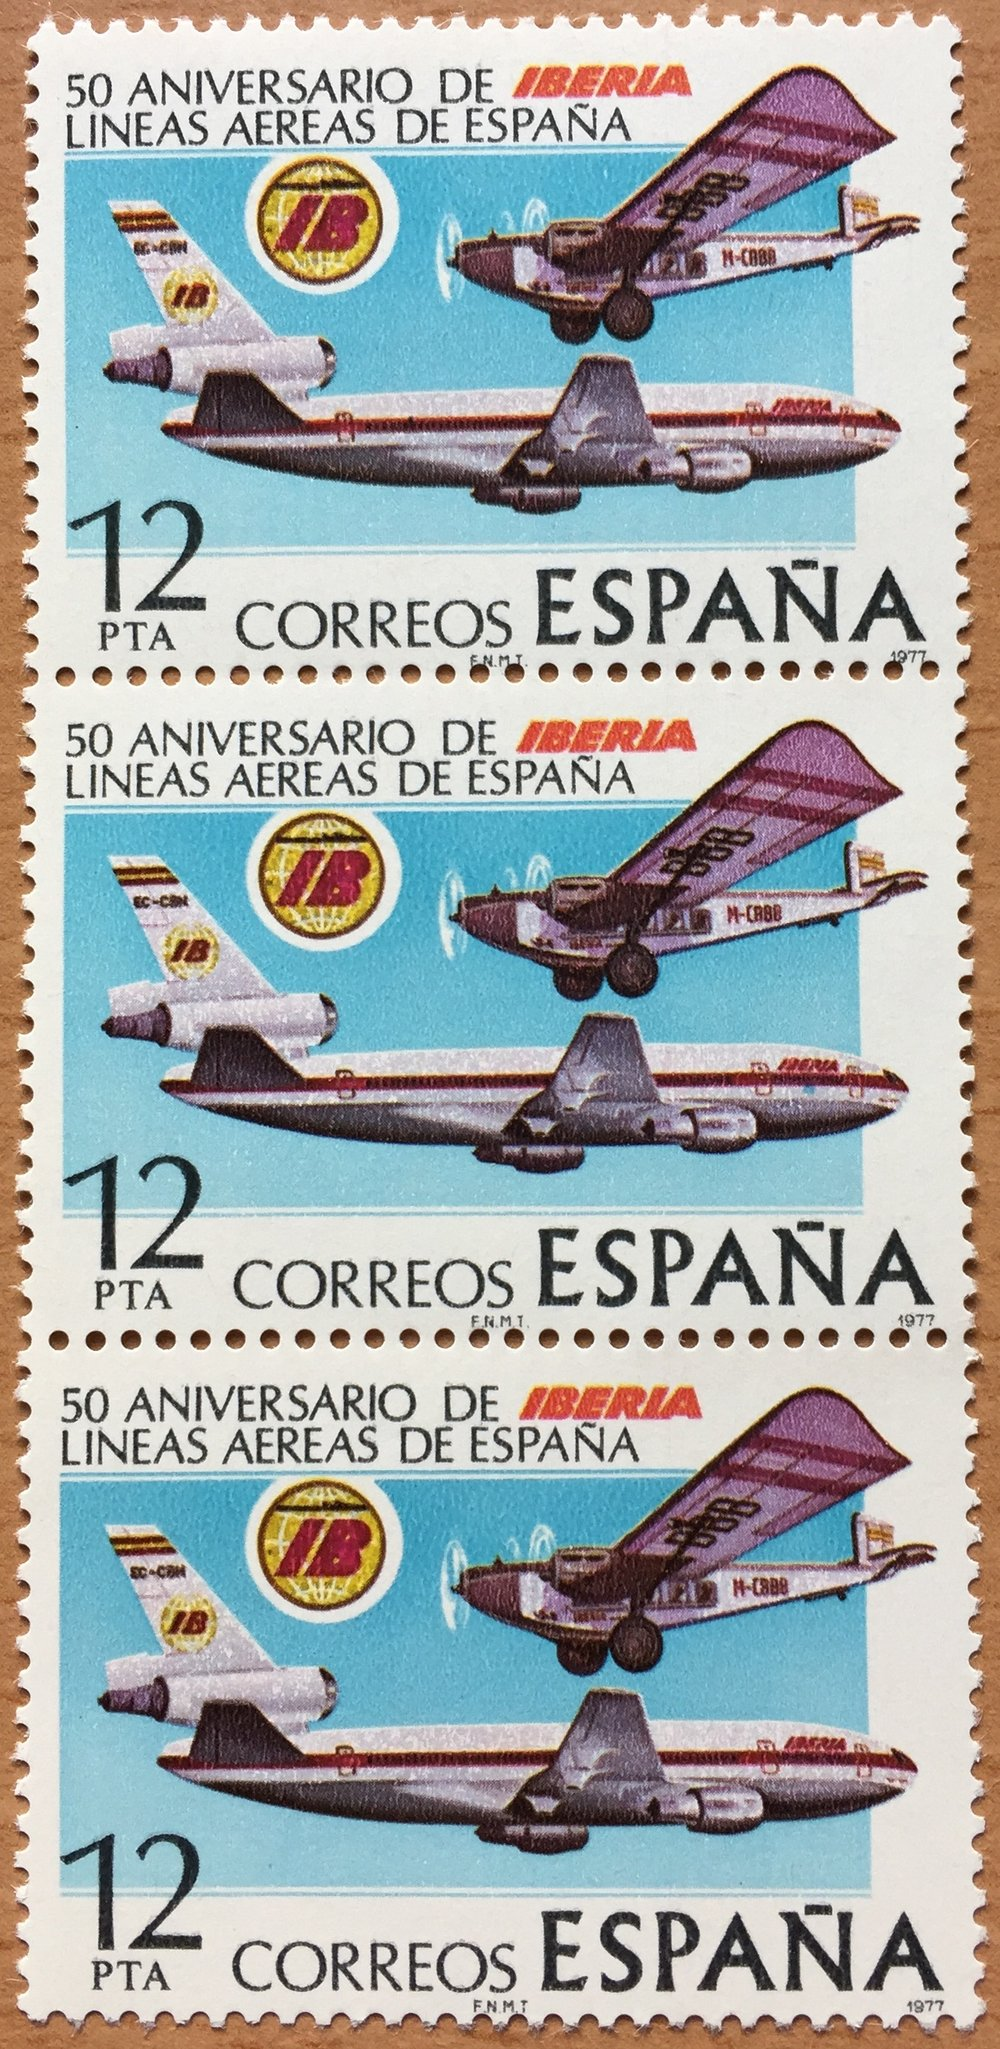 "Iberia's 50th Anniversary, Spanish post, ""Correos"", stamp, 1977"